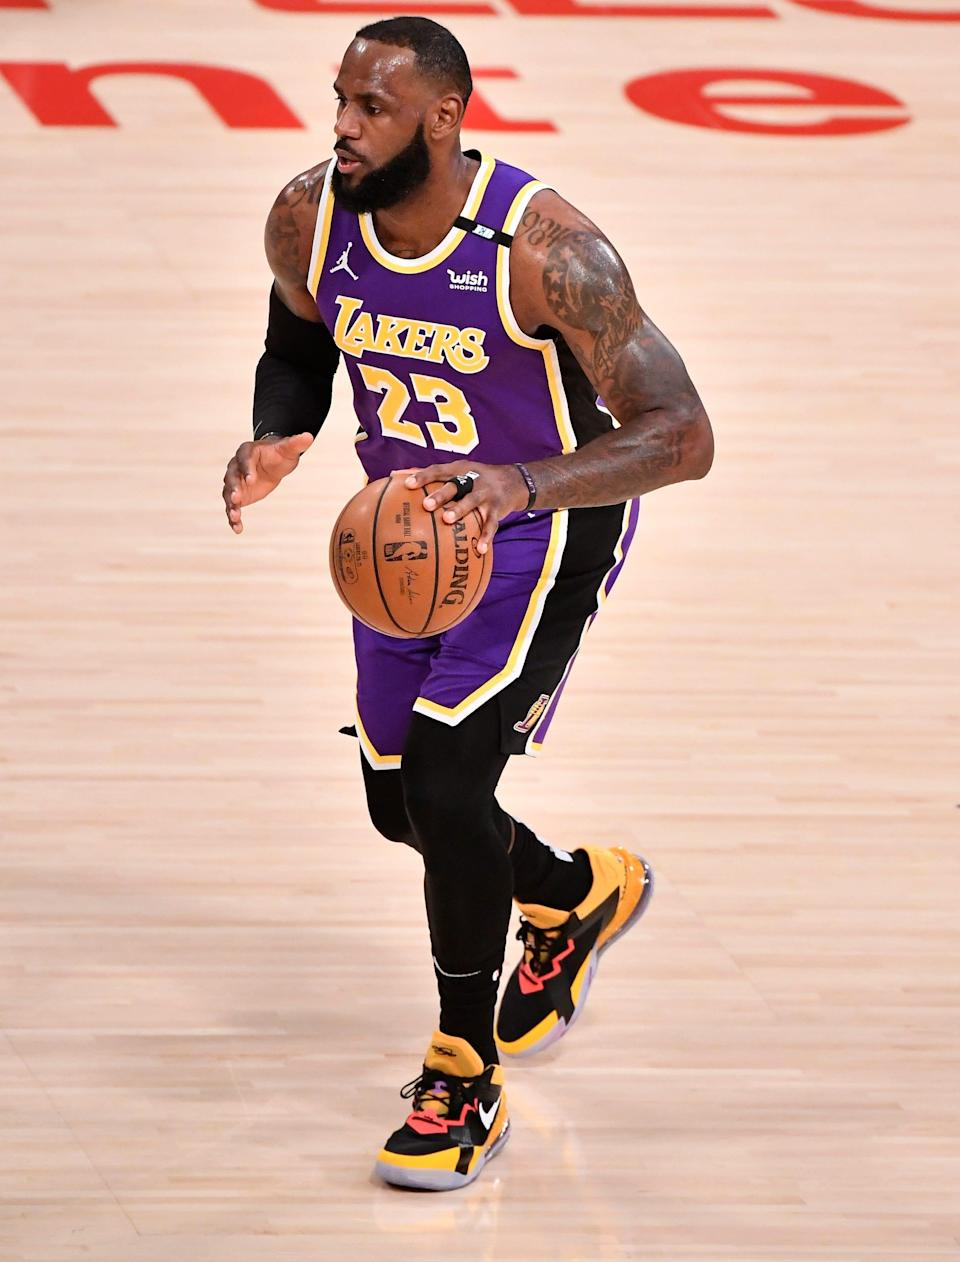 LeBron James returned to the Los Angeles Lakers lineup Friday night against the Sacramento Kings after recovering from an ankle injury.